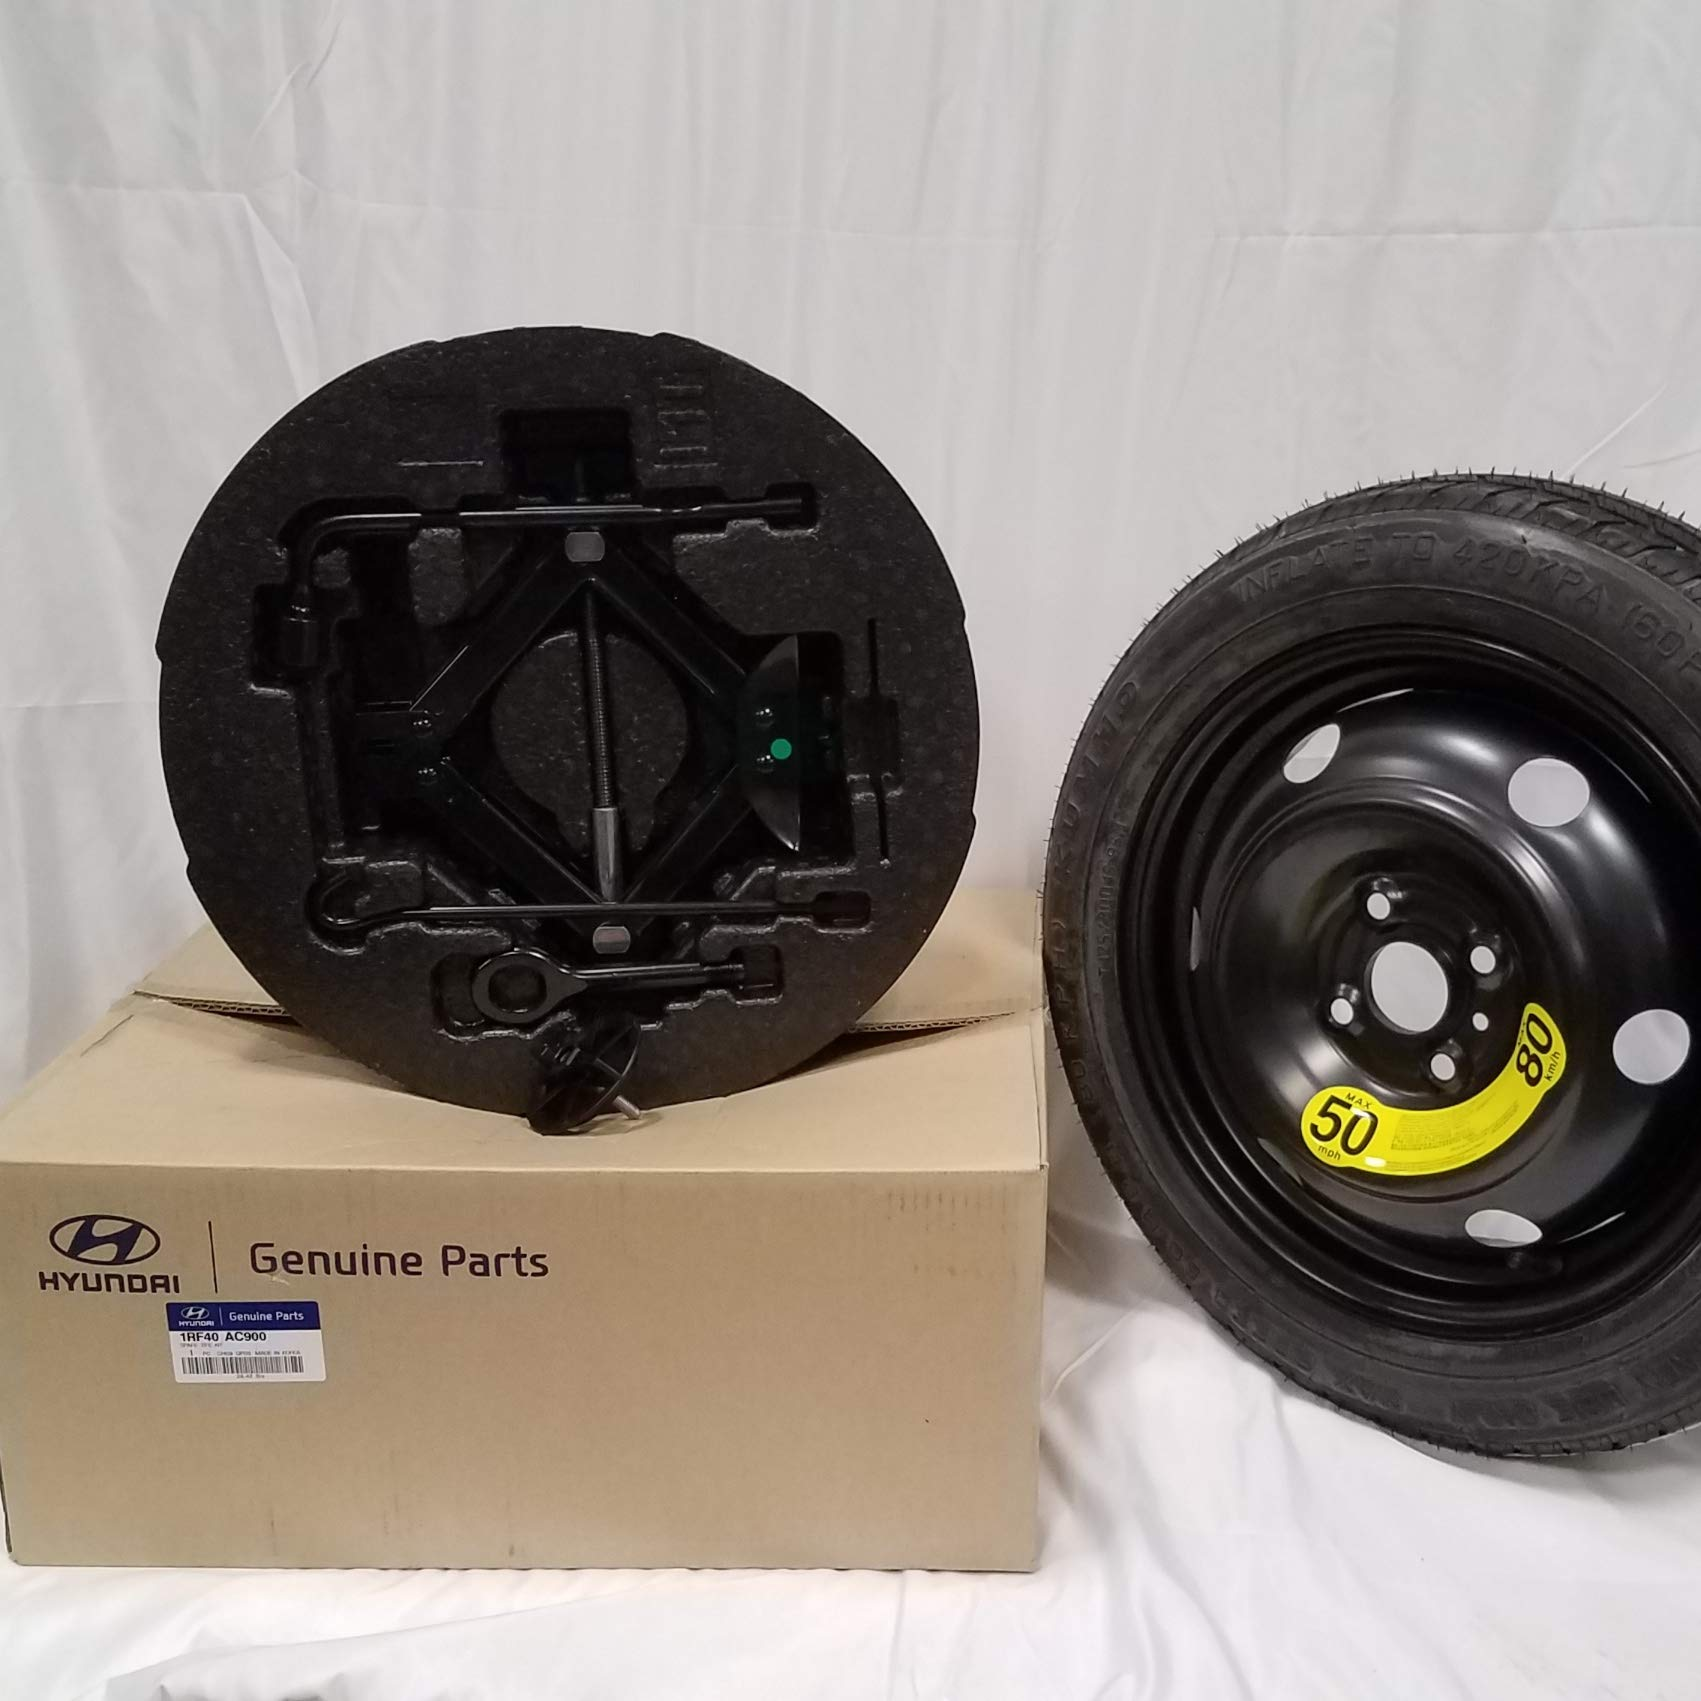 HYUNDAI Genuine 1RF40-AC900 Spare Tire Kit